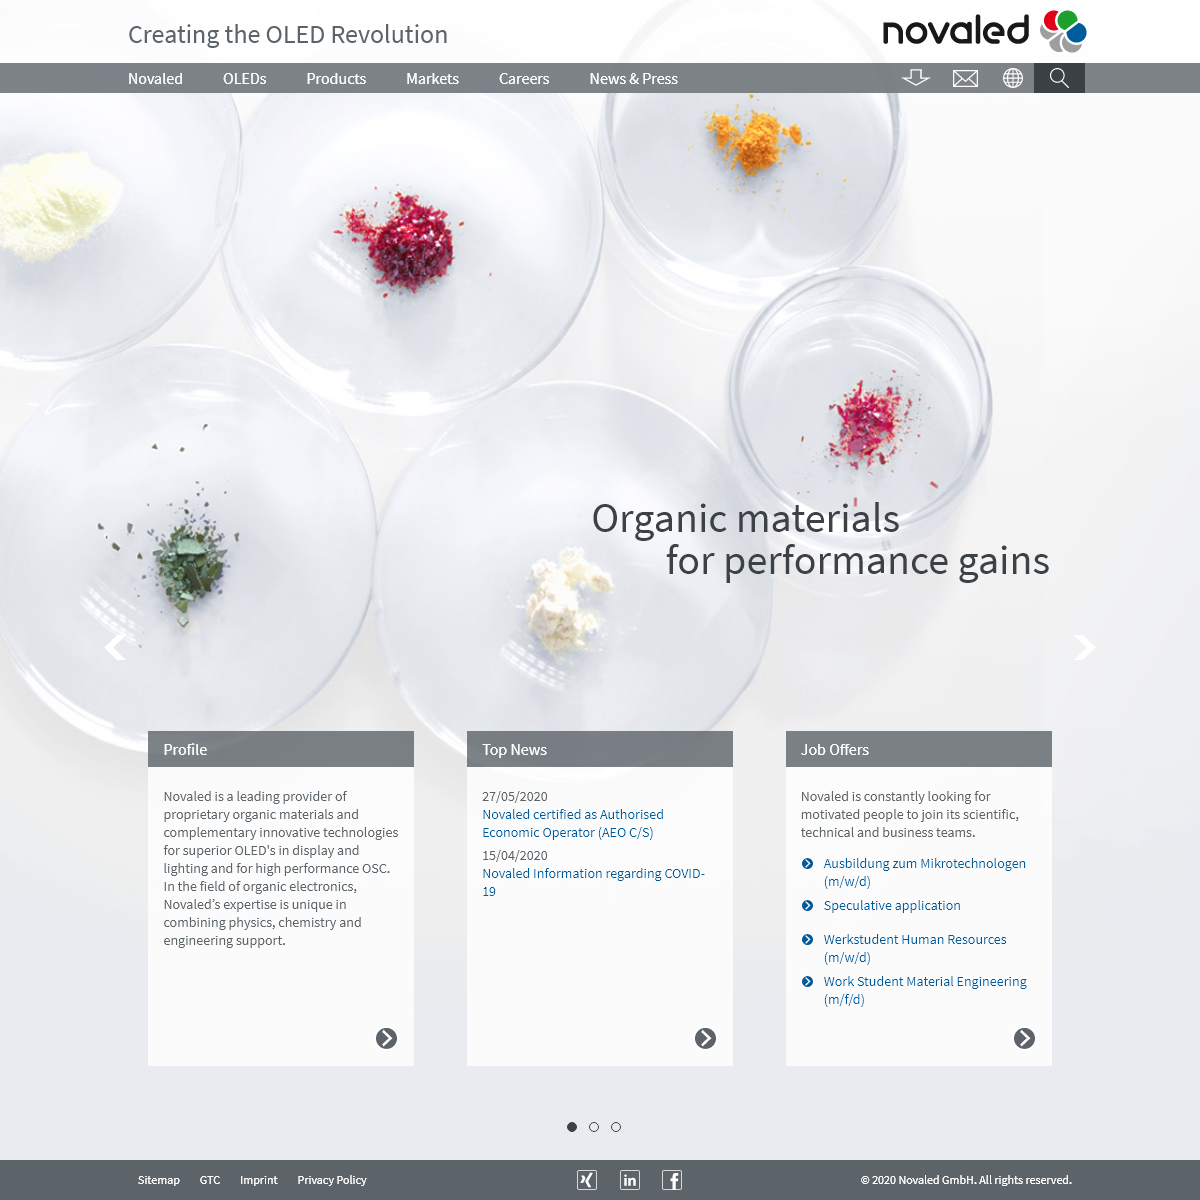 Homepage - NOVALED - Creating the OLED Revolution